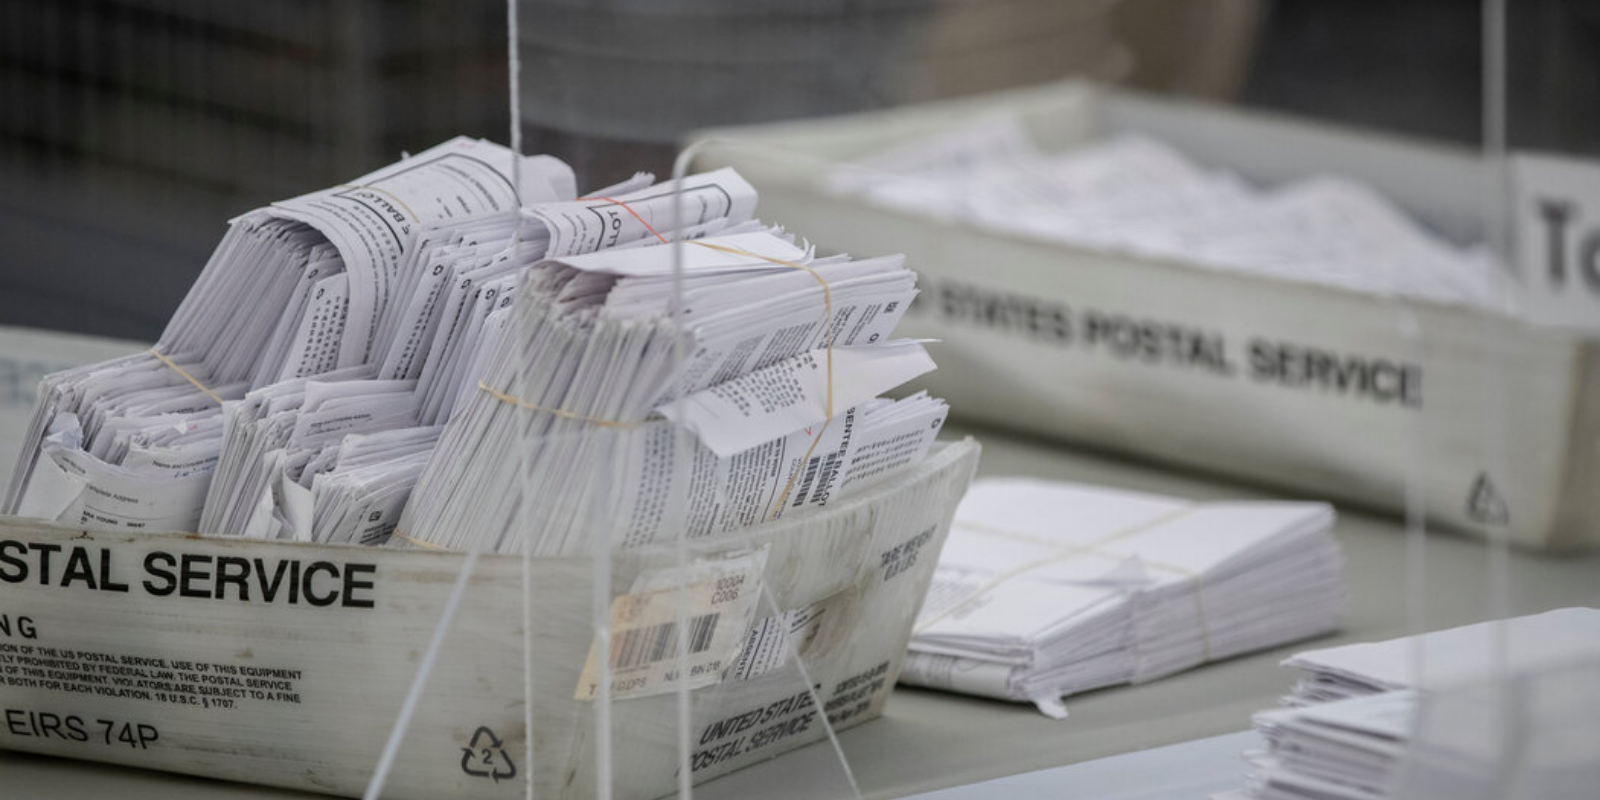 USPS worker faces federal charges for throwing out 112 mail-in ballots